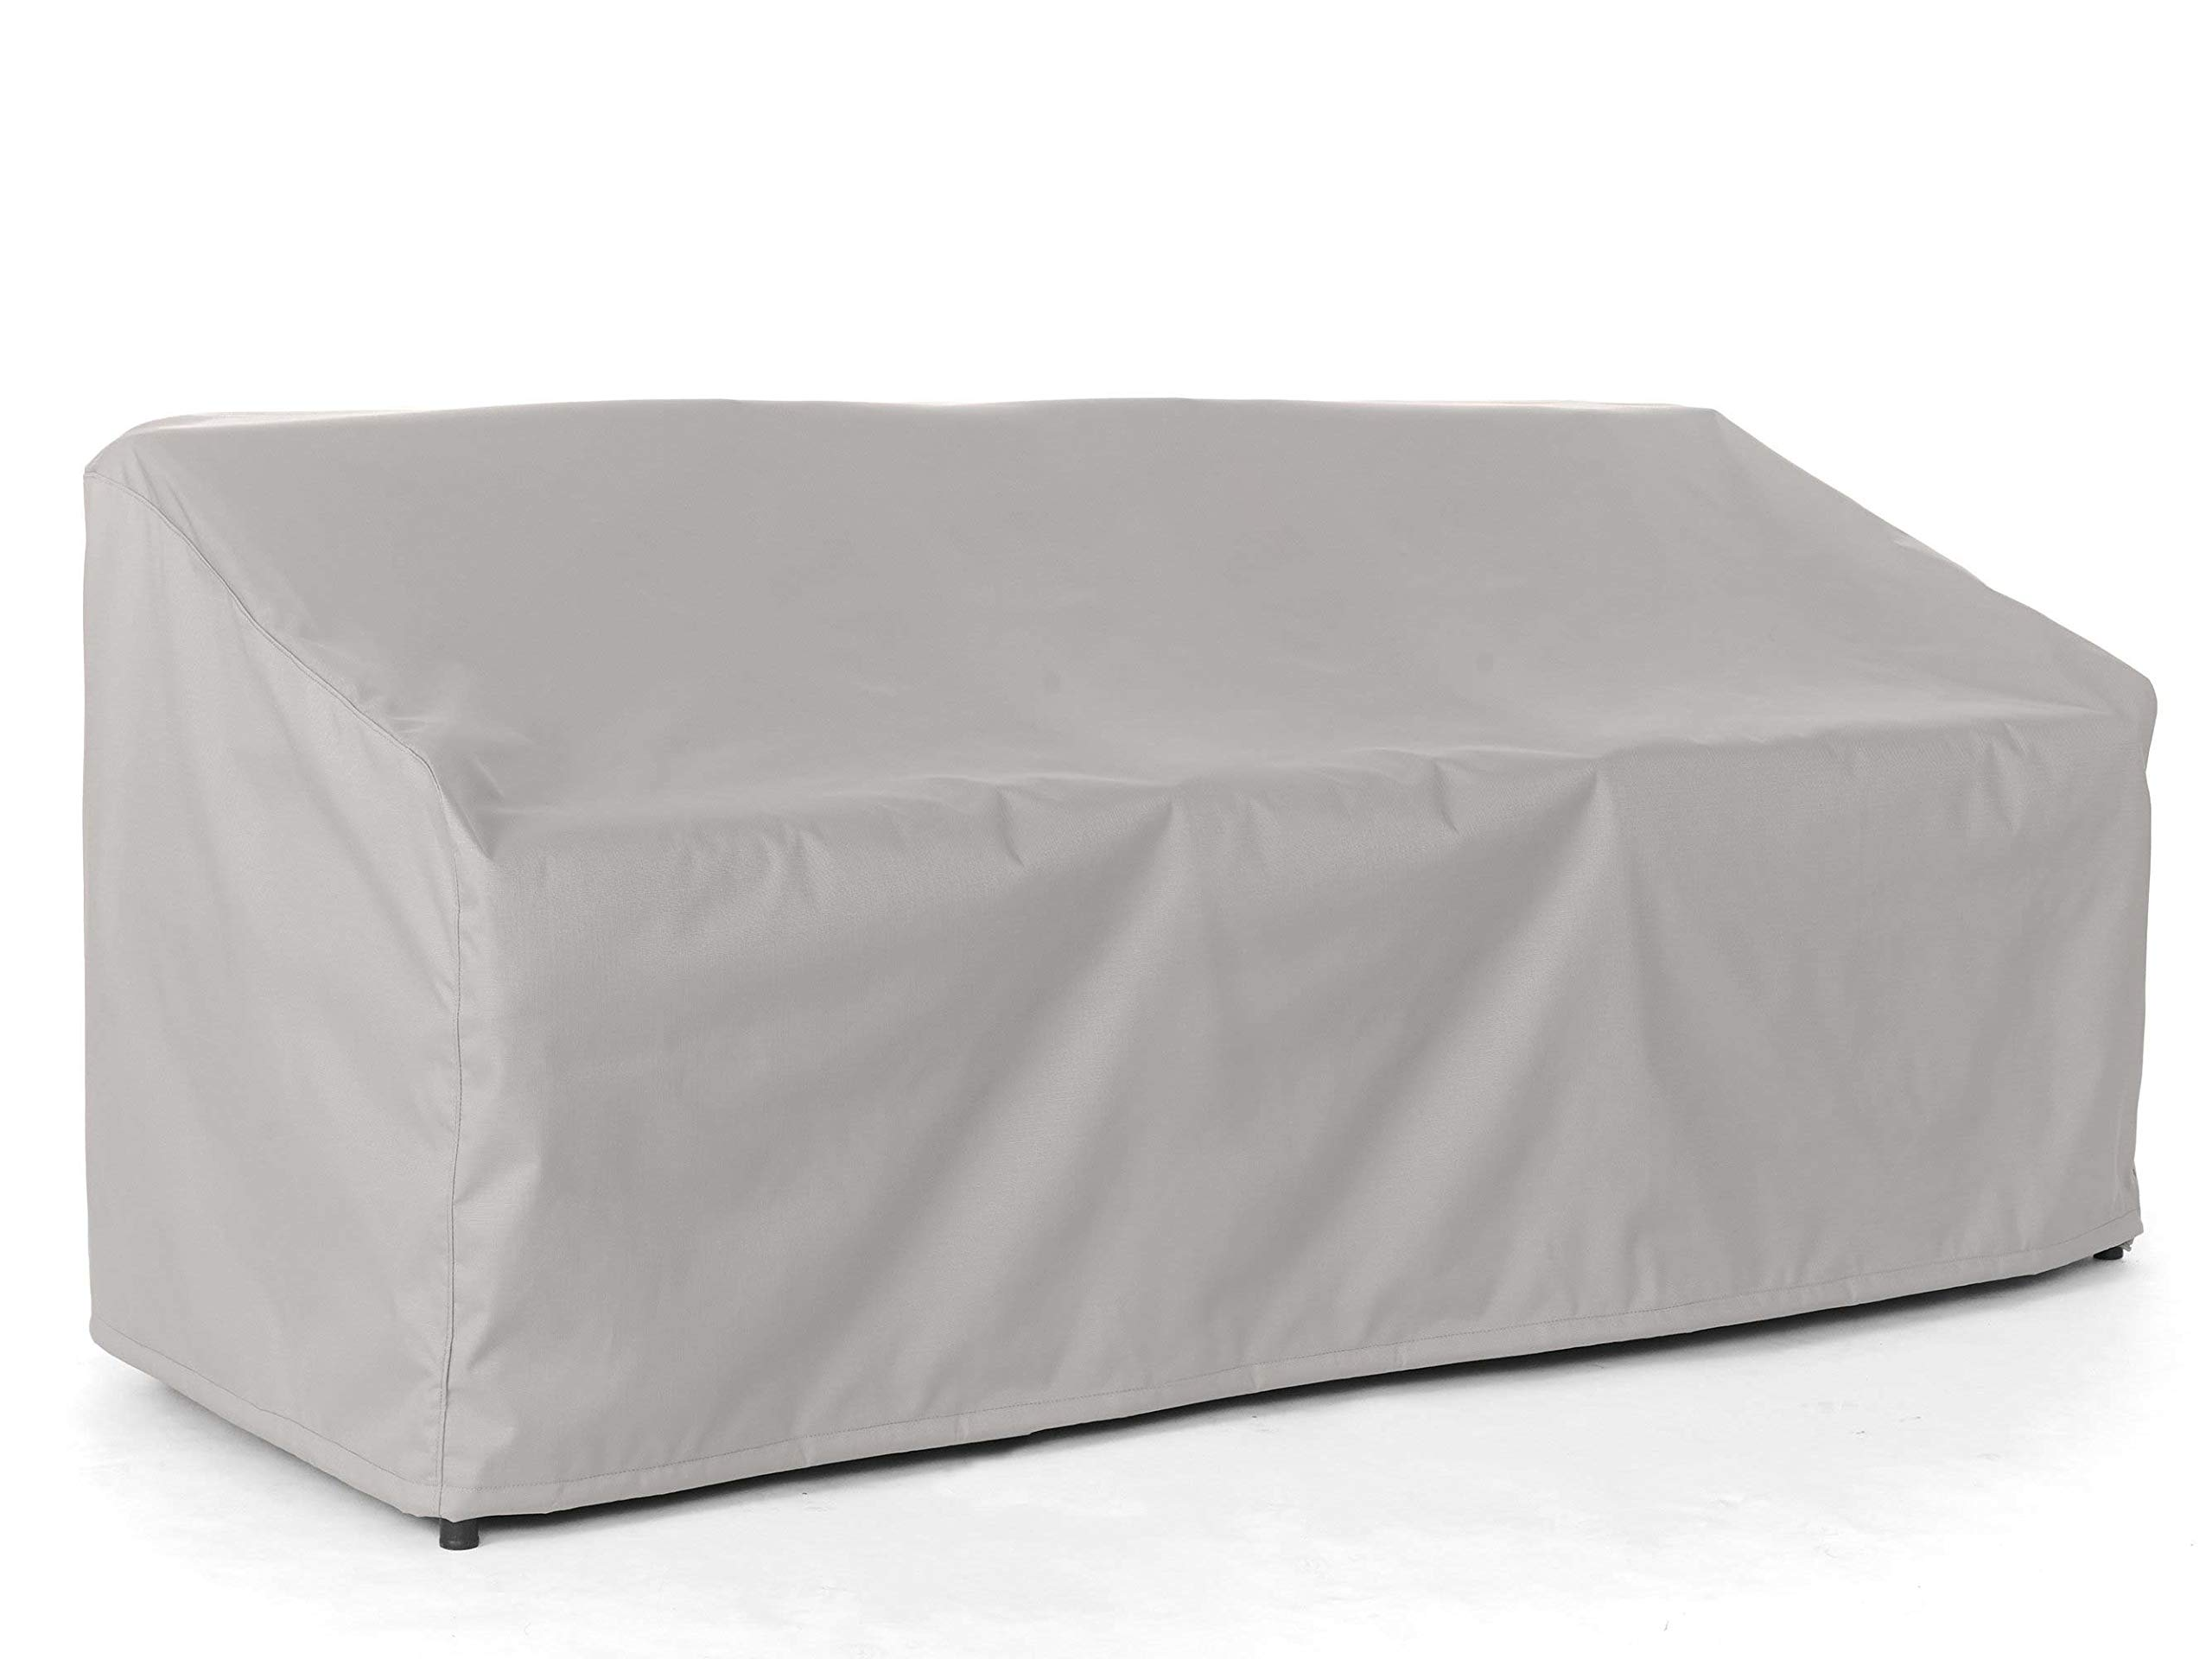 Covermates - Outdoor Patio Sofa Covers - Fits 82 in Width, 40 in Depth and 40 in Height - Ultima Ripstop - 600D Fade Resistant Poly - Breathable Covered Ventilation - 7 Year Warranty - Ripstop Grey